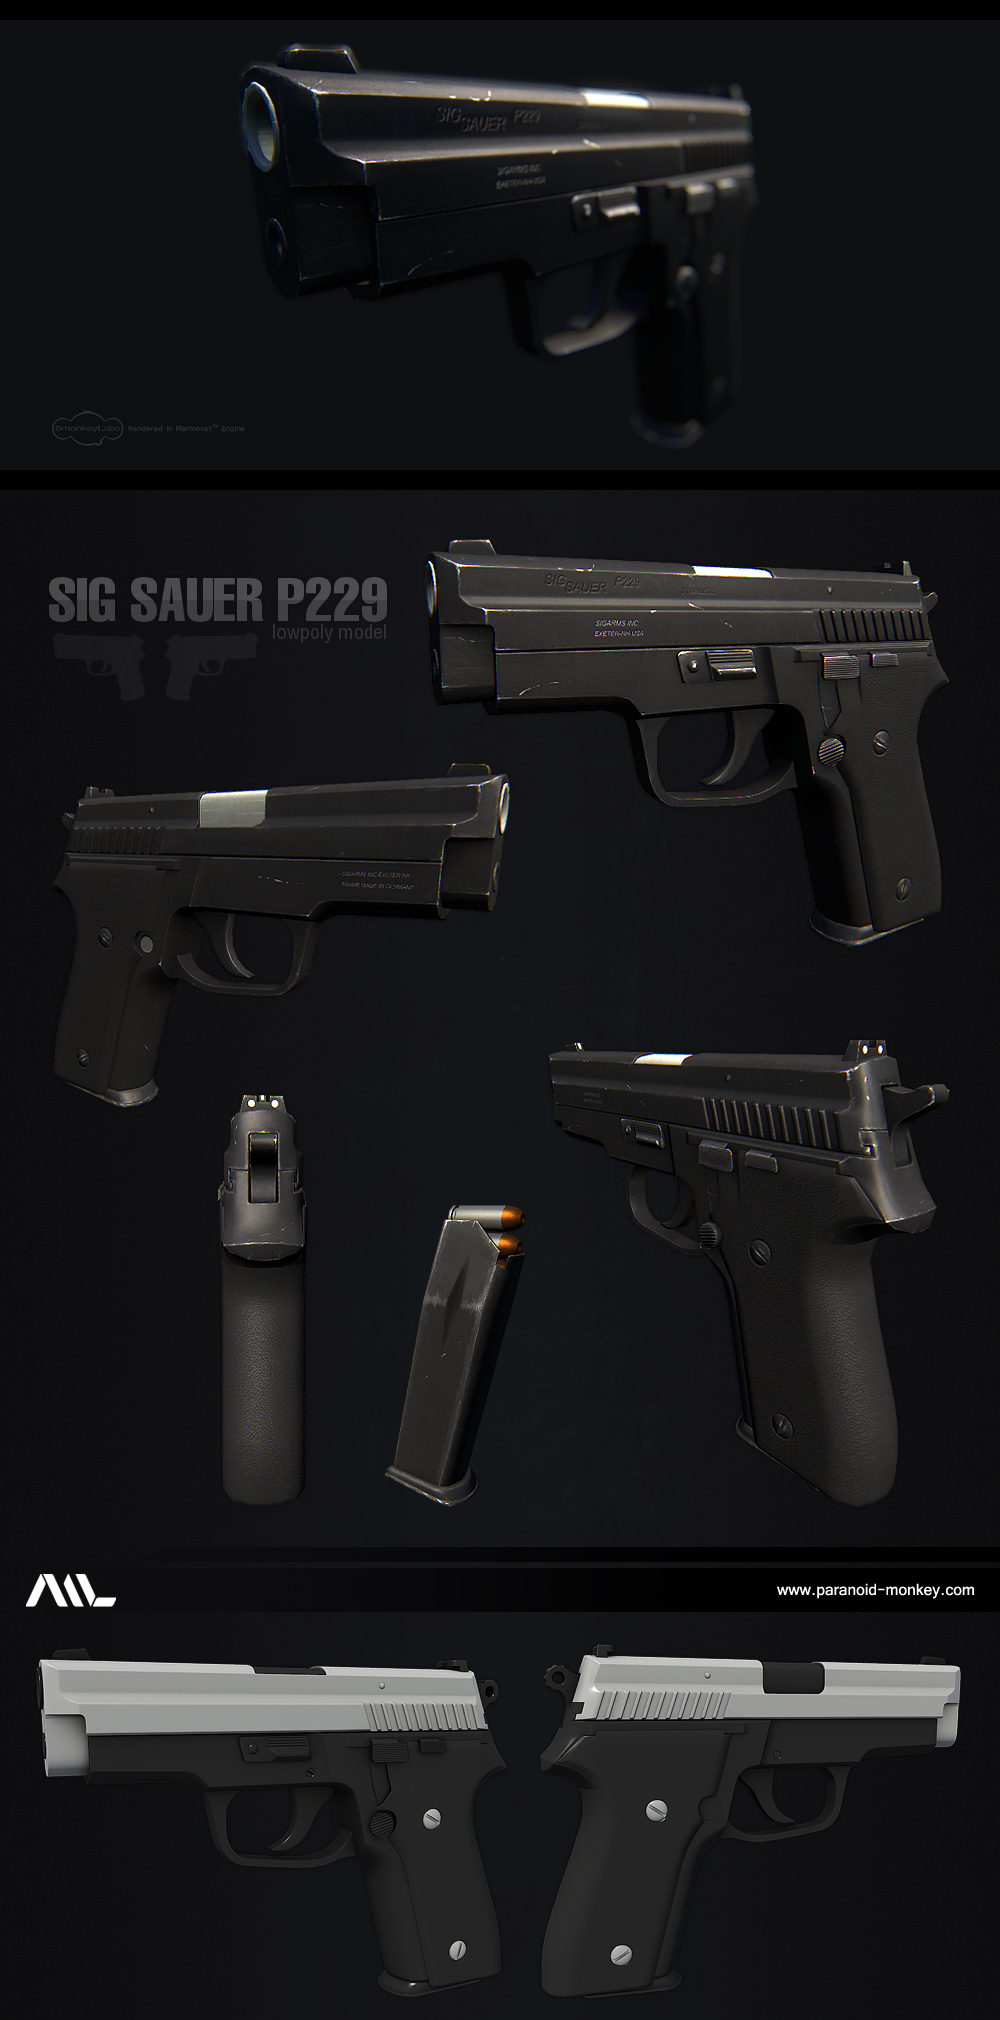 Sig Sauer P229 By Paranoid Monkey